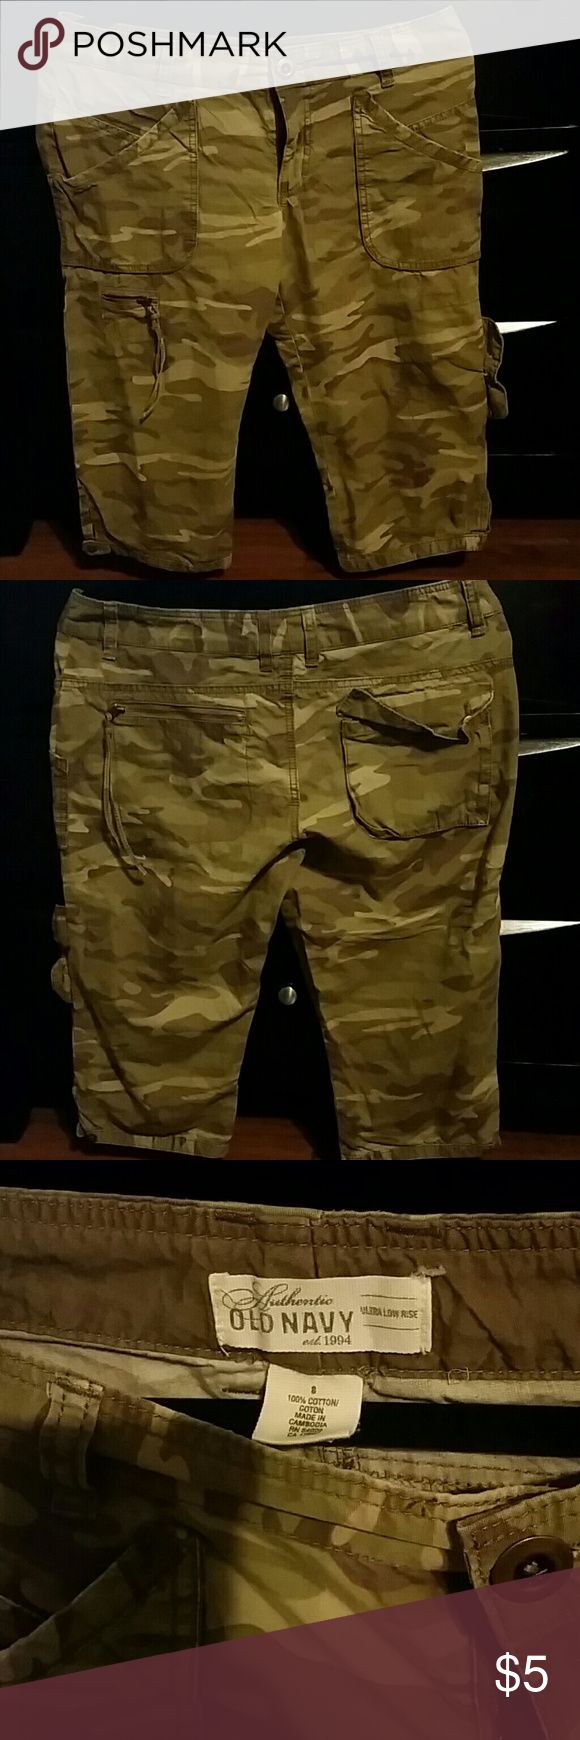 Cargo camo shorts Old Navy cargo camouflage shorts Old Navy Shorts Cargos